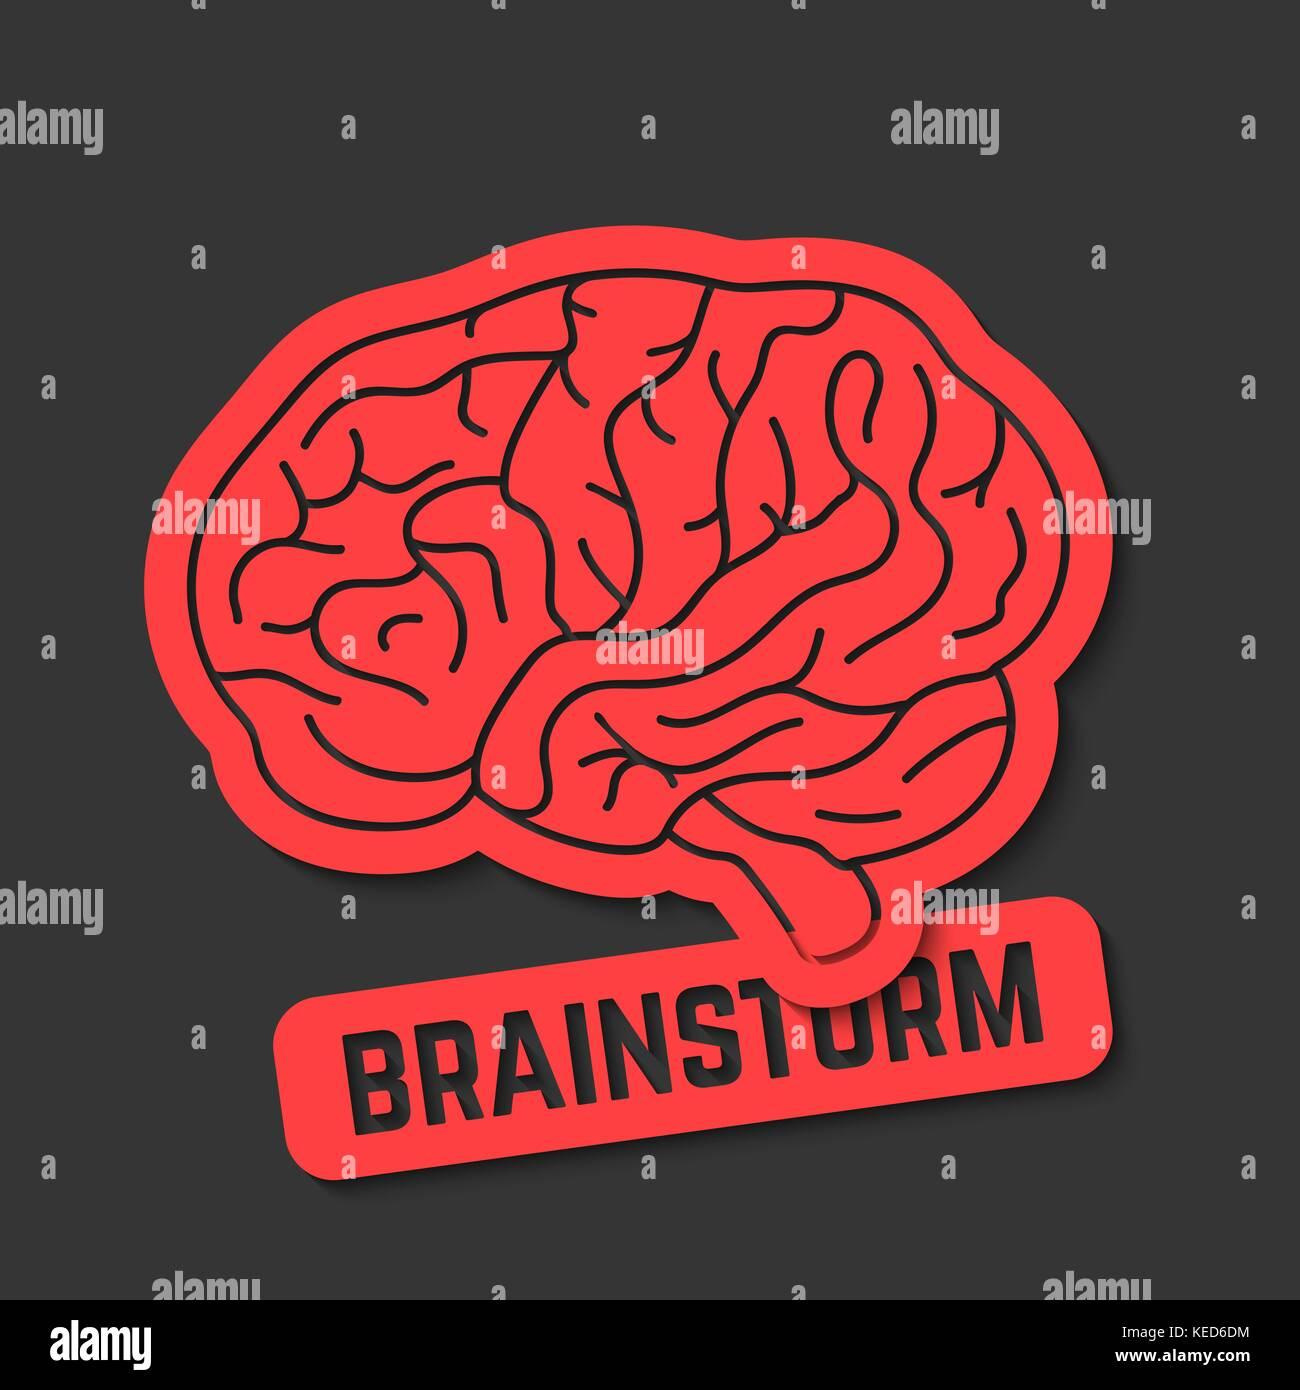 red outline brain icon like brainstorm - Stock Image